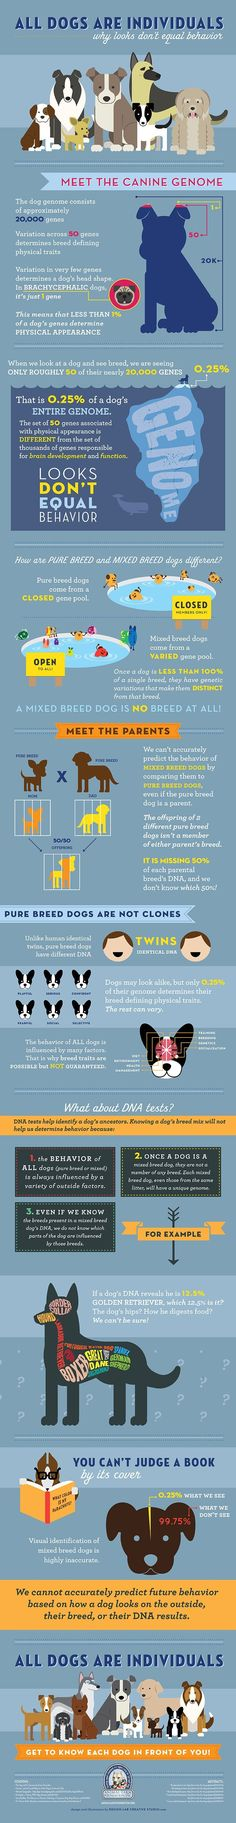 Illustration and infographic design layout for Animal Farm Foundation by Design Lab Creative Studio All Dogs Are Individuals [INFOGRAPHIC]: Why Looks and Breed Don't Equal Behavior #doginfographic